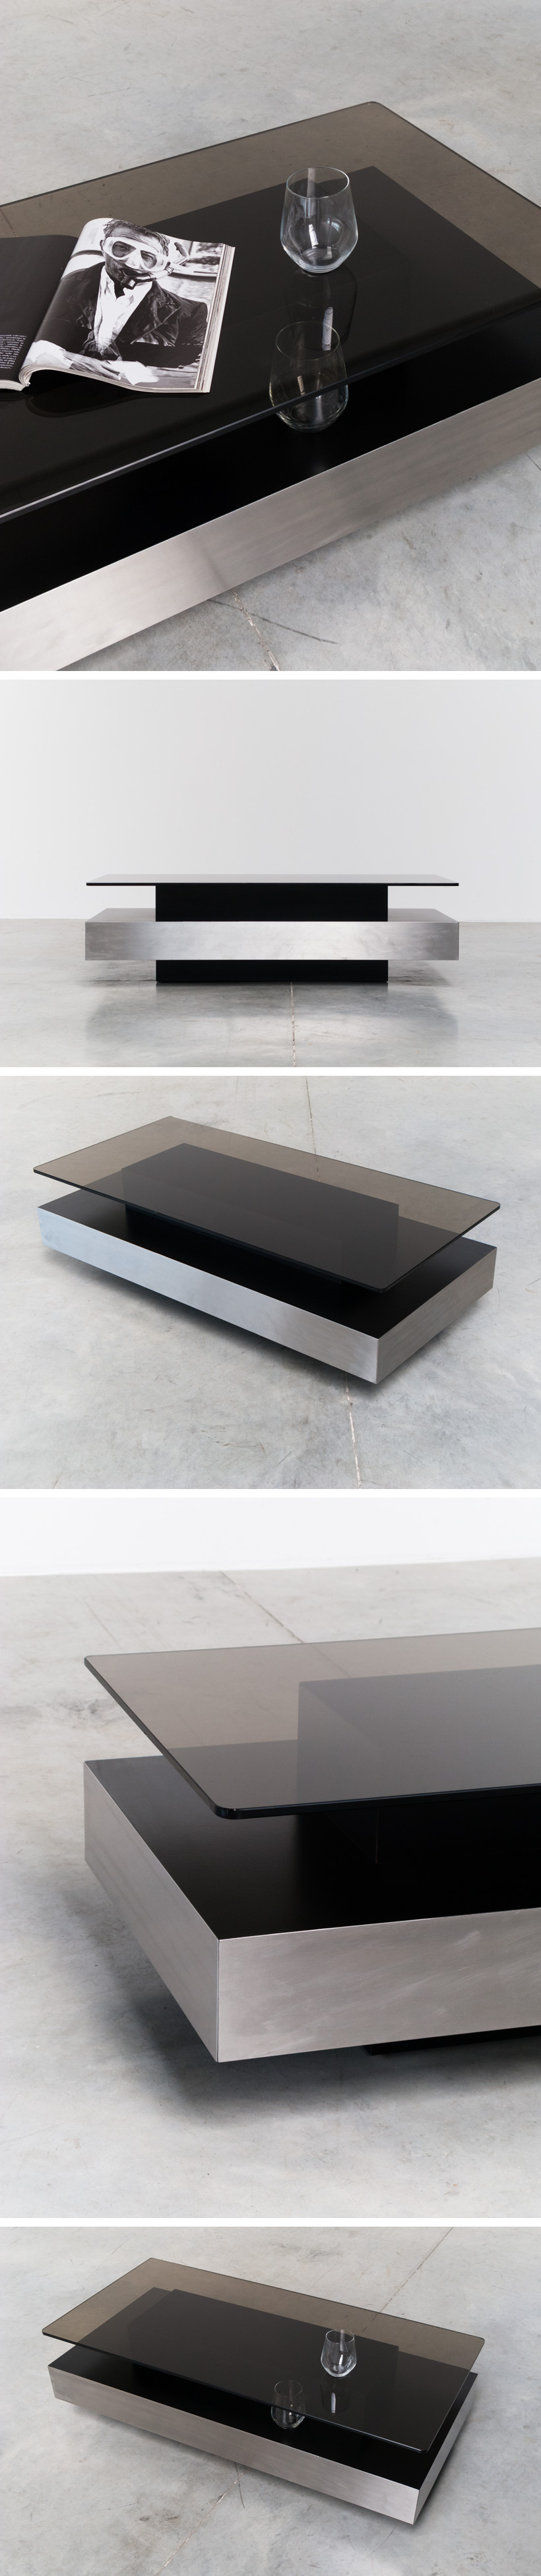 Roche Bobois two level coffee table Large